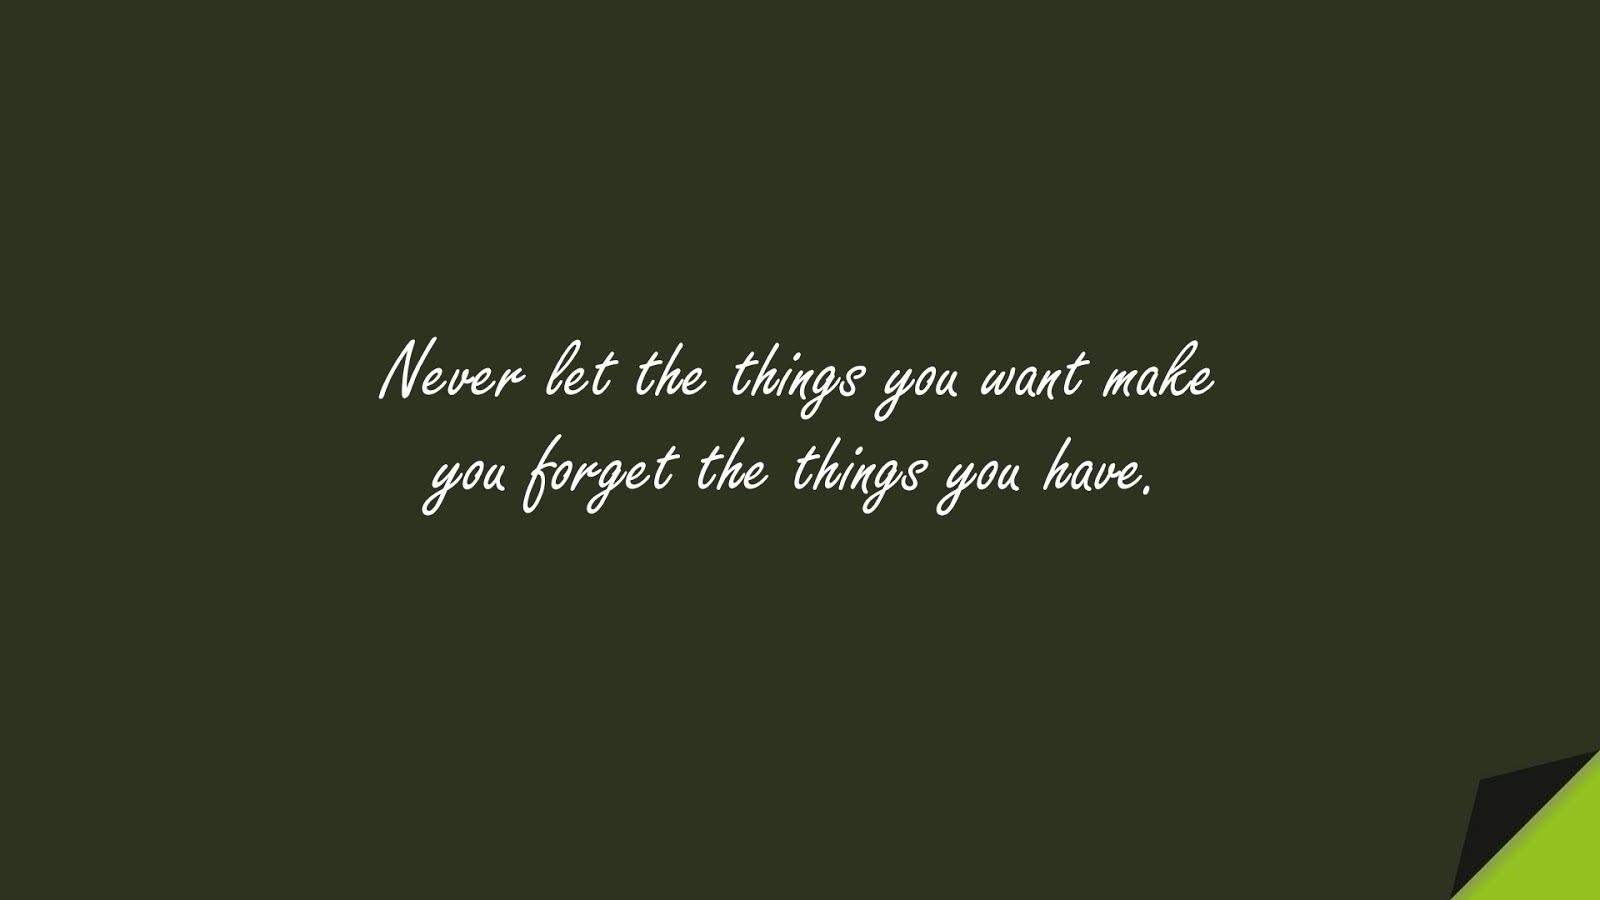 Never let the things you want make you forget the things you have.FALSE